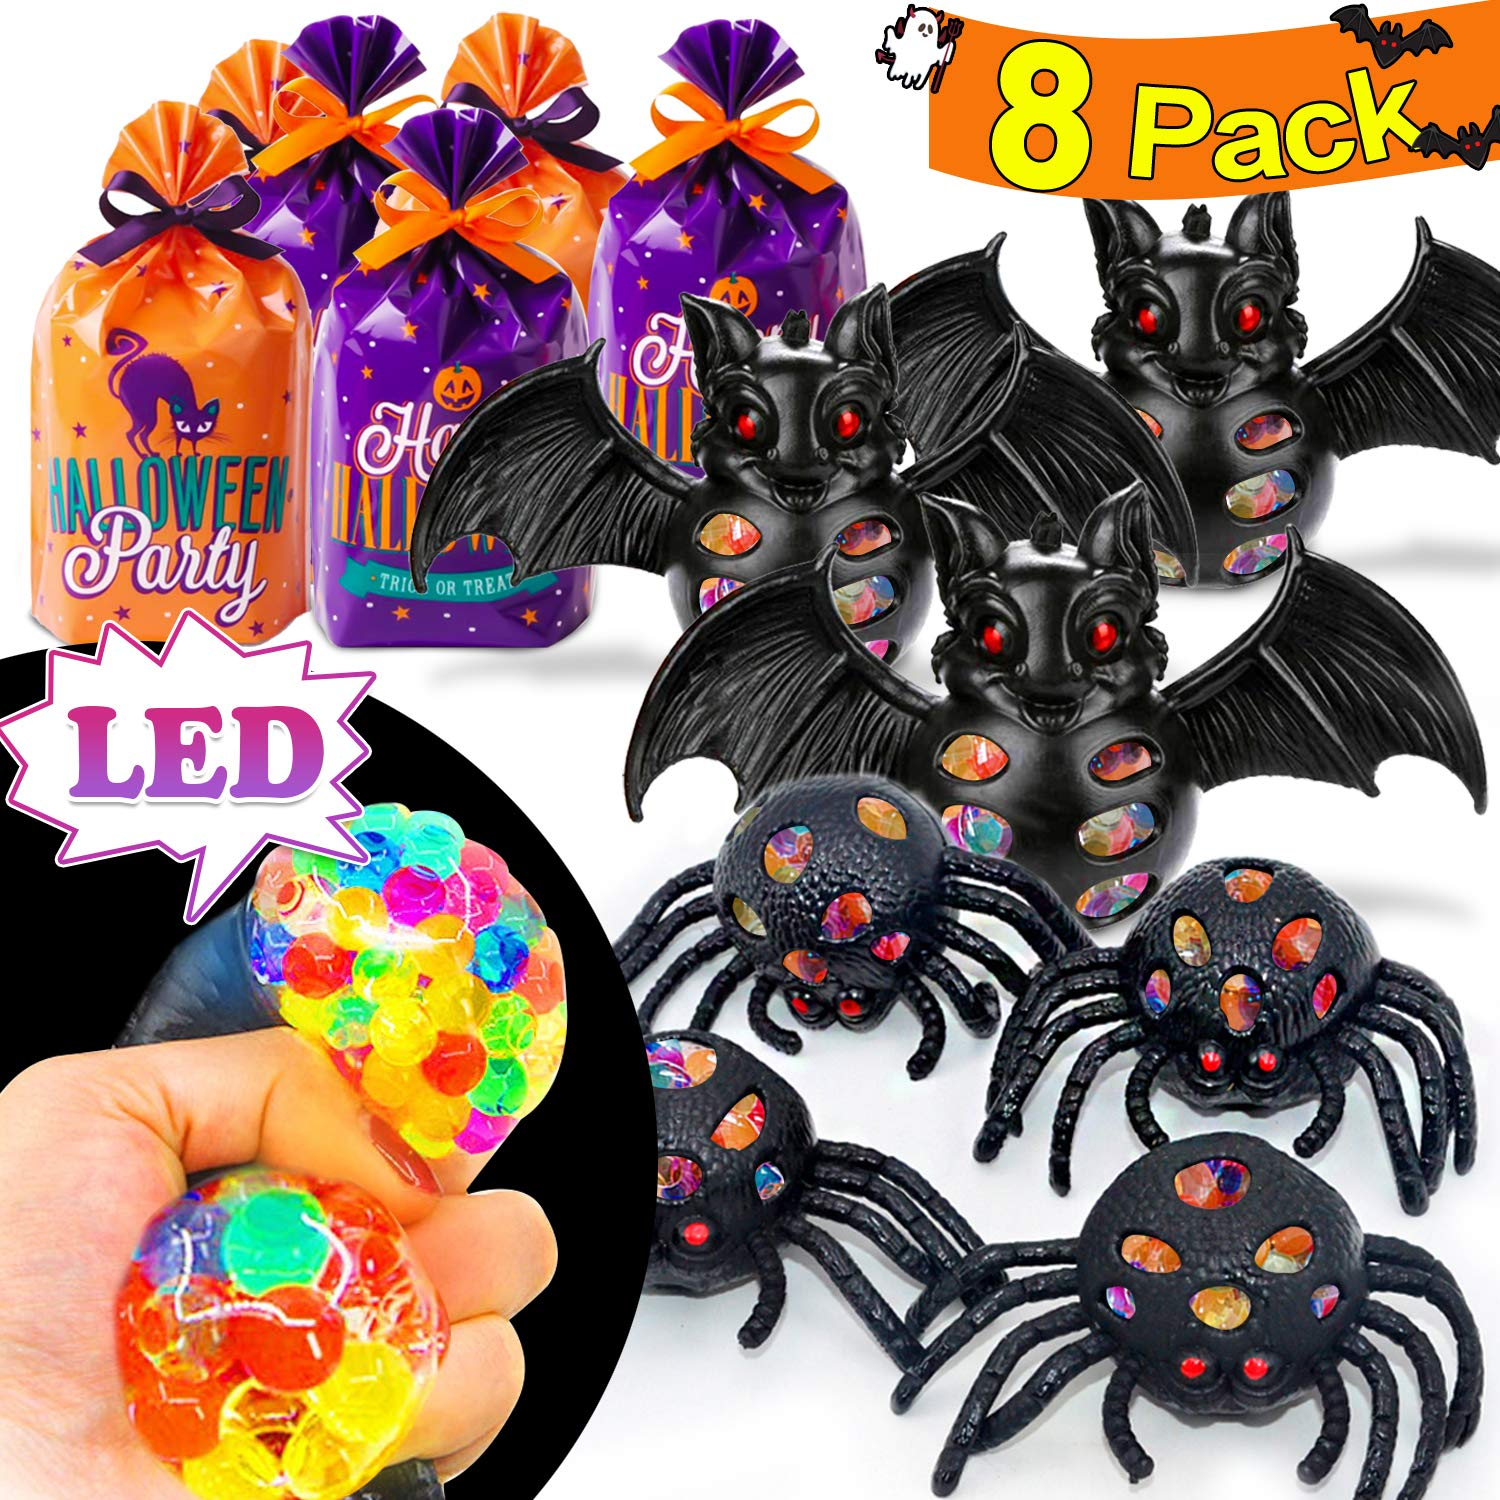 Halloween LED Spider Toy Ball, 8 Pack Mesh Grap Stress Relief Ball Halloween Kids Party Favor Trick Or Treat Goodie Bags Scary Black Spider Bat Sensory Ball LED Stress Ball Halloween Decoration by iGeeKid